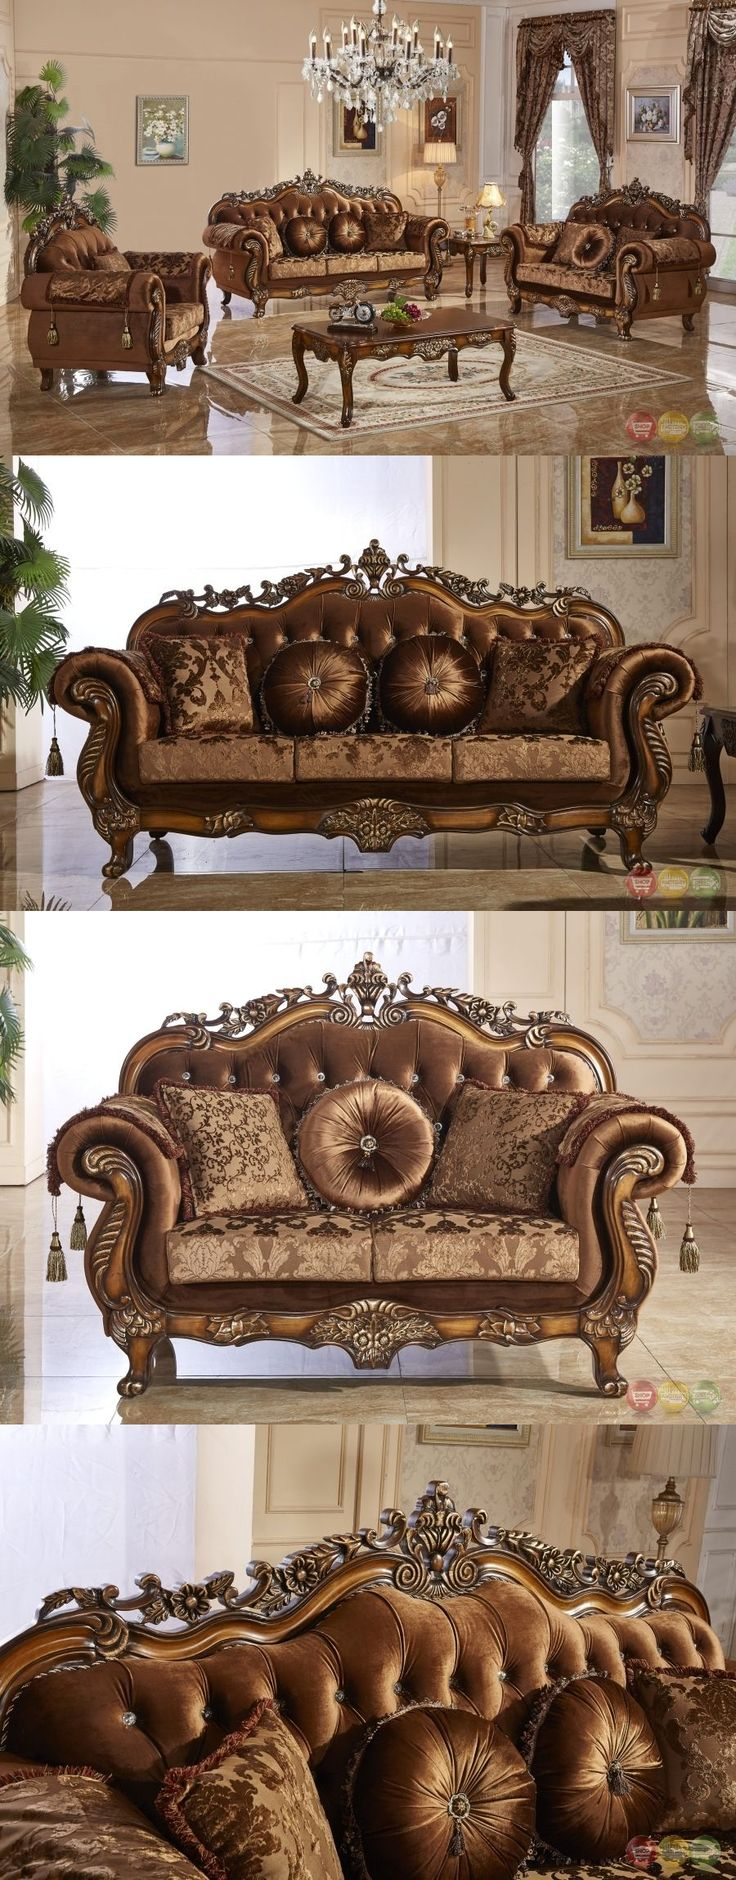 furniture: Traditional Style Formal Living Room Furniture Brown Sofa Set Carved Wood Frames -> BUY IT NOW ONLY: $2498 on eBay!